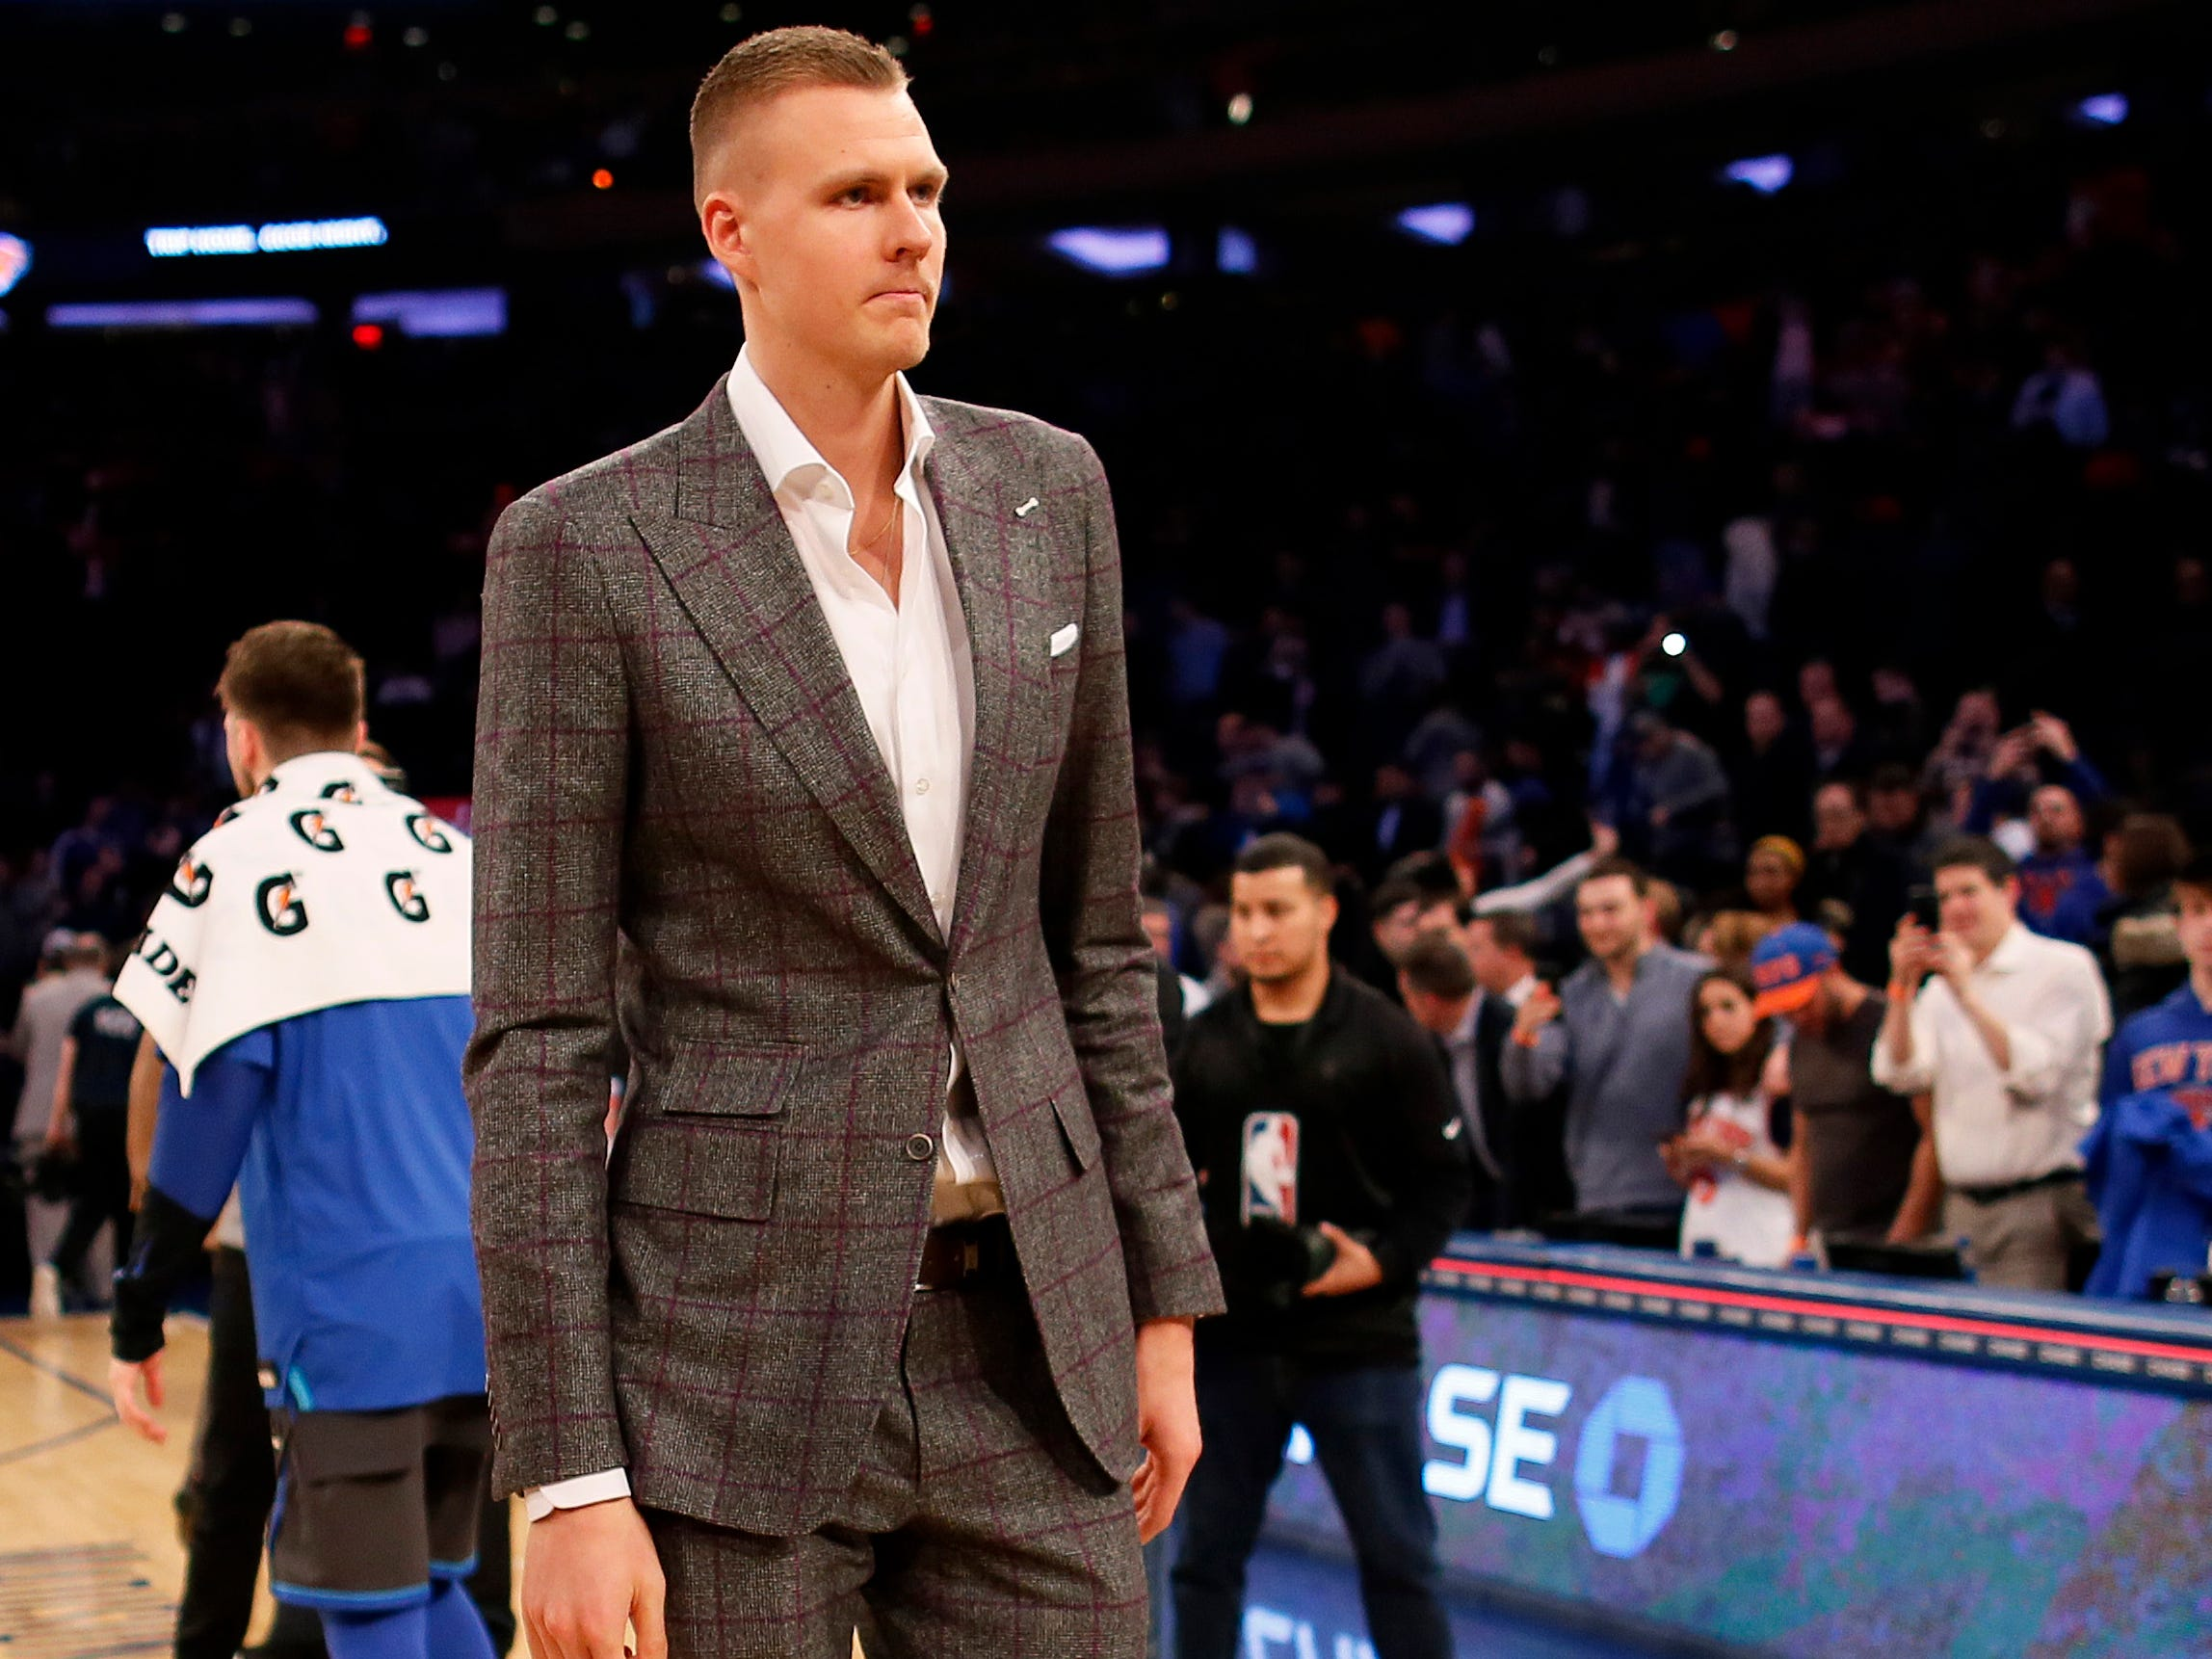 Jan 30, 2019; New York, NY, USA; New York Knicks forward Kristaps Porzingis (6) walks off the court after losing to the Dallas Mavericks at Madison Square Garden.